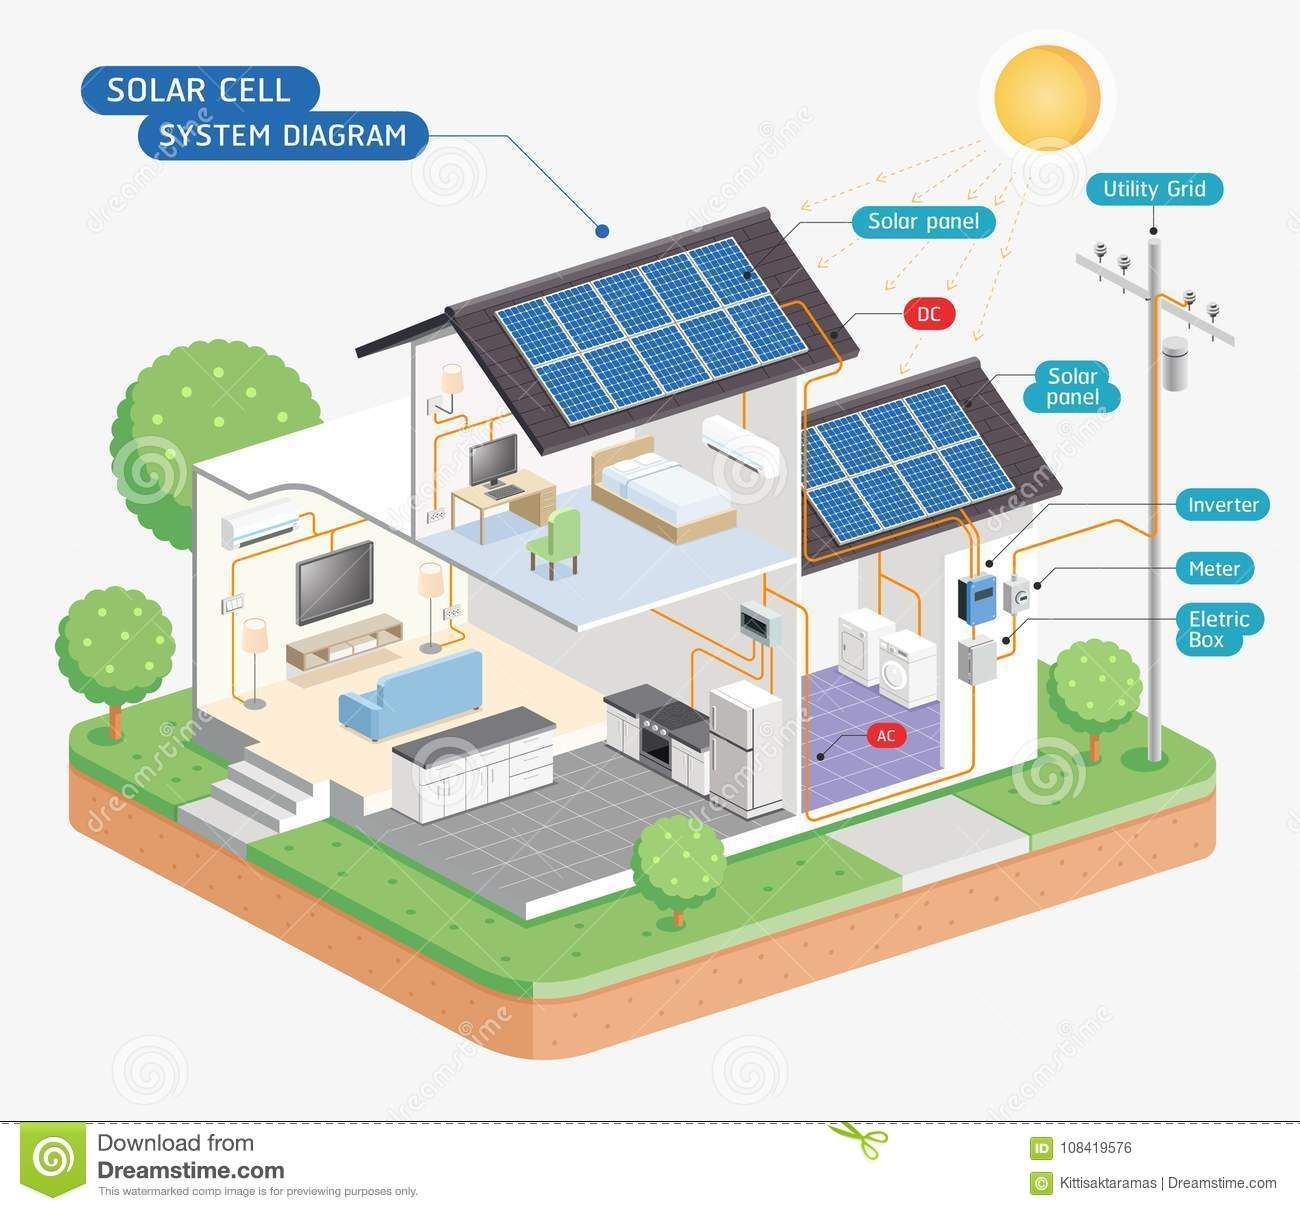 Illustration About Solar Cell System Diagram Vector Illustrations Illustration Of Electric Modern Energy 108419576 In 2020 Solar Cell Solar Panels Solar Projects